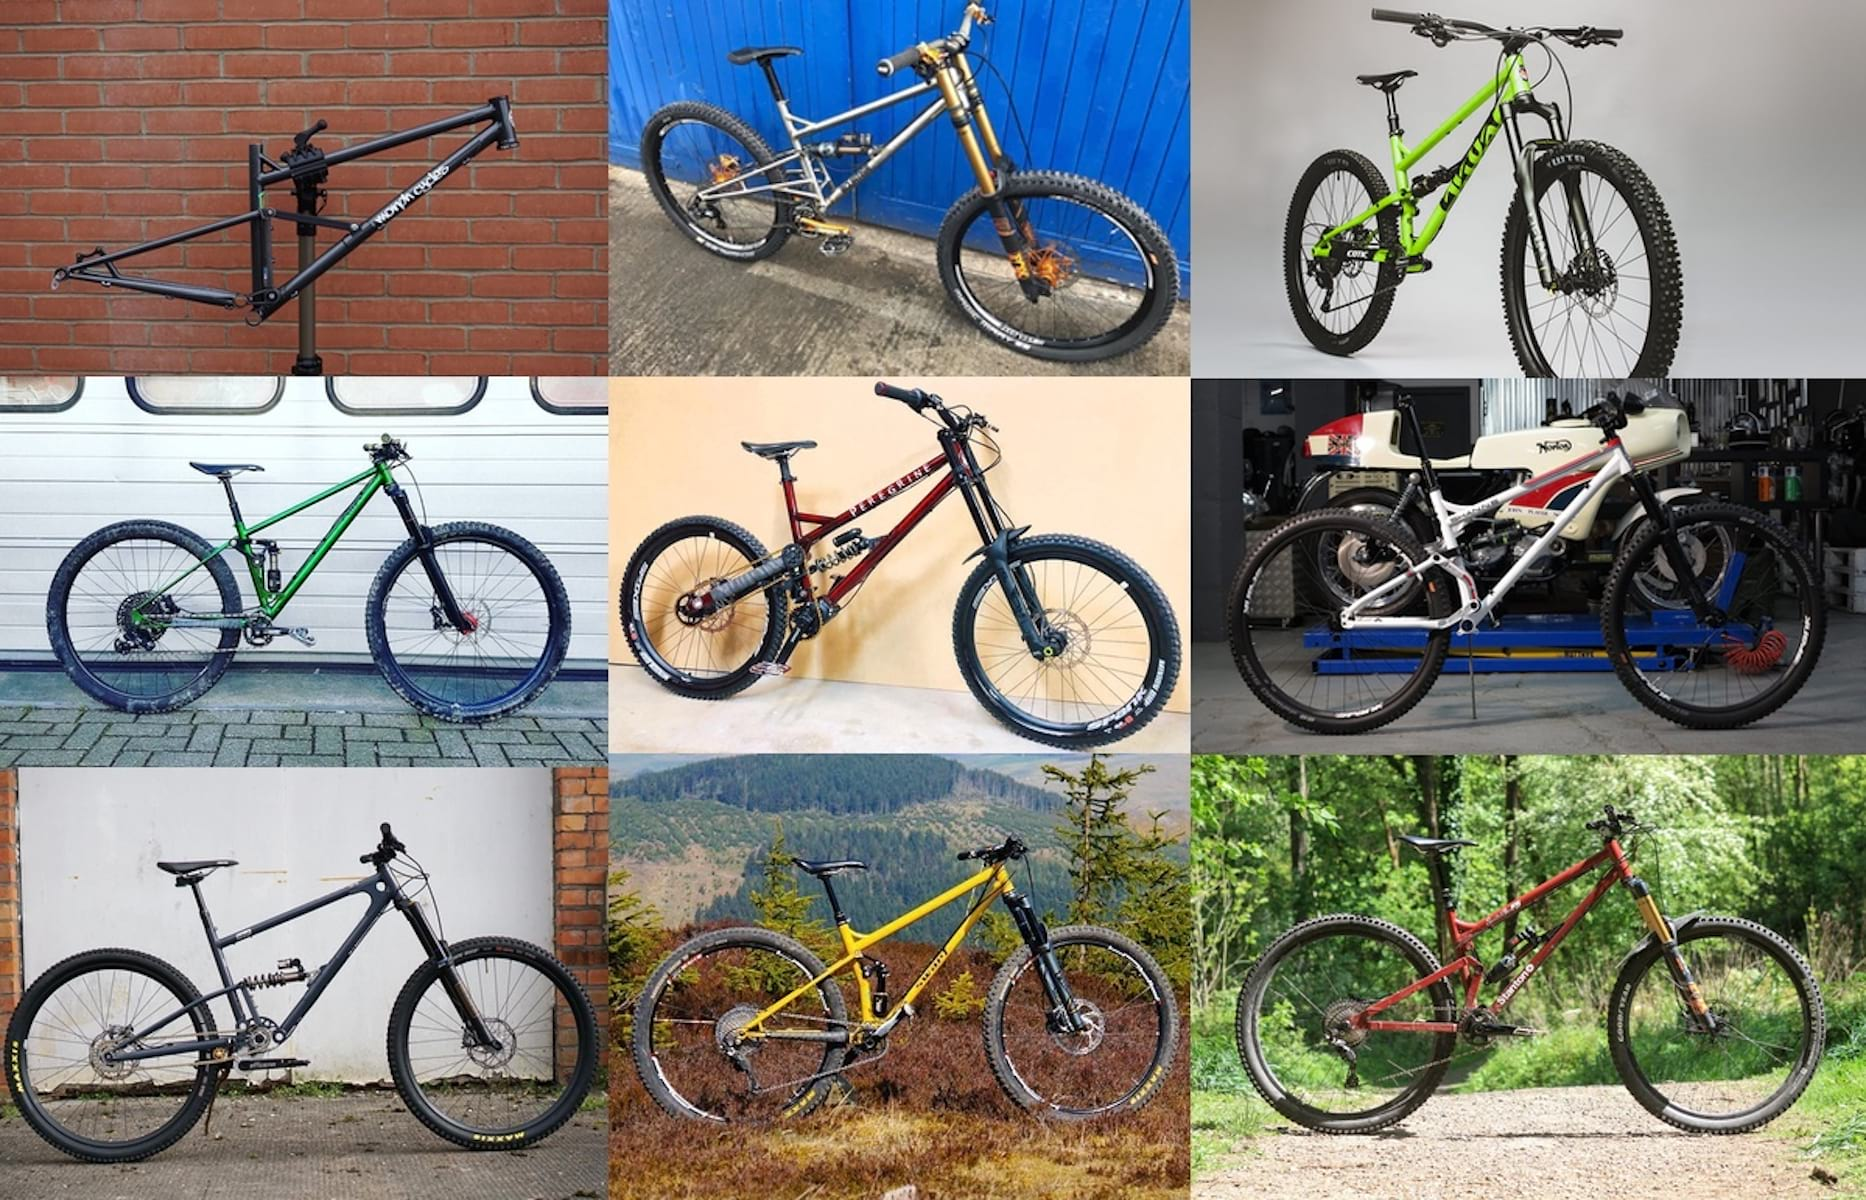 10 more steel full suspension bikes